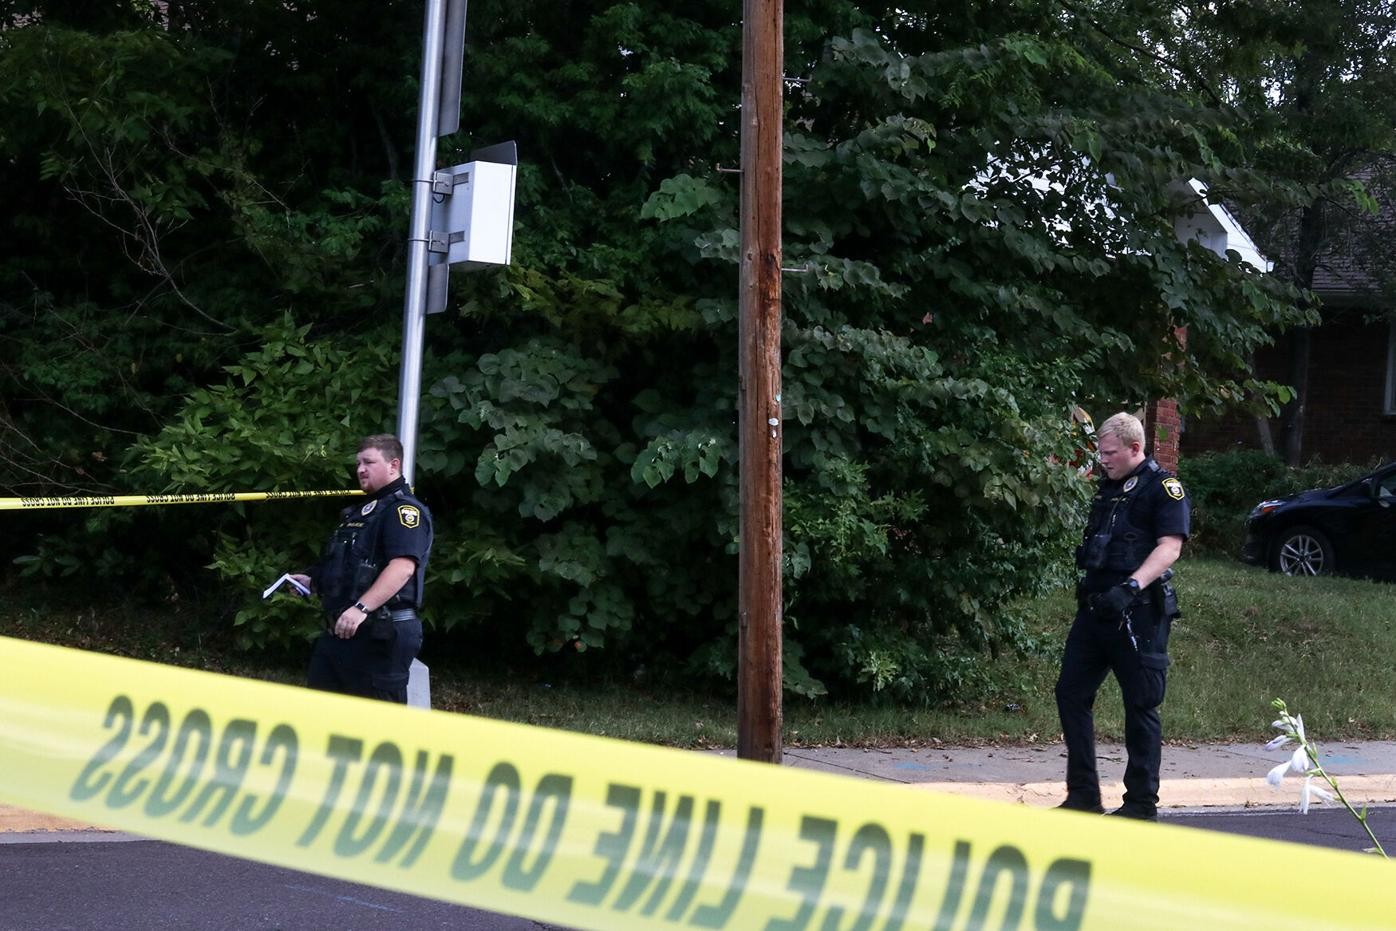 Police officers walk through a taped-off area